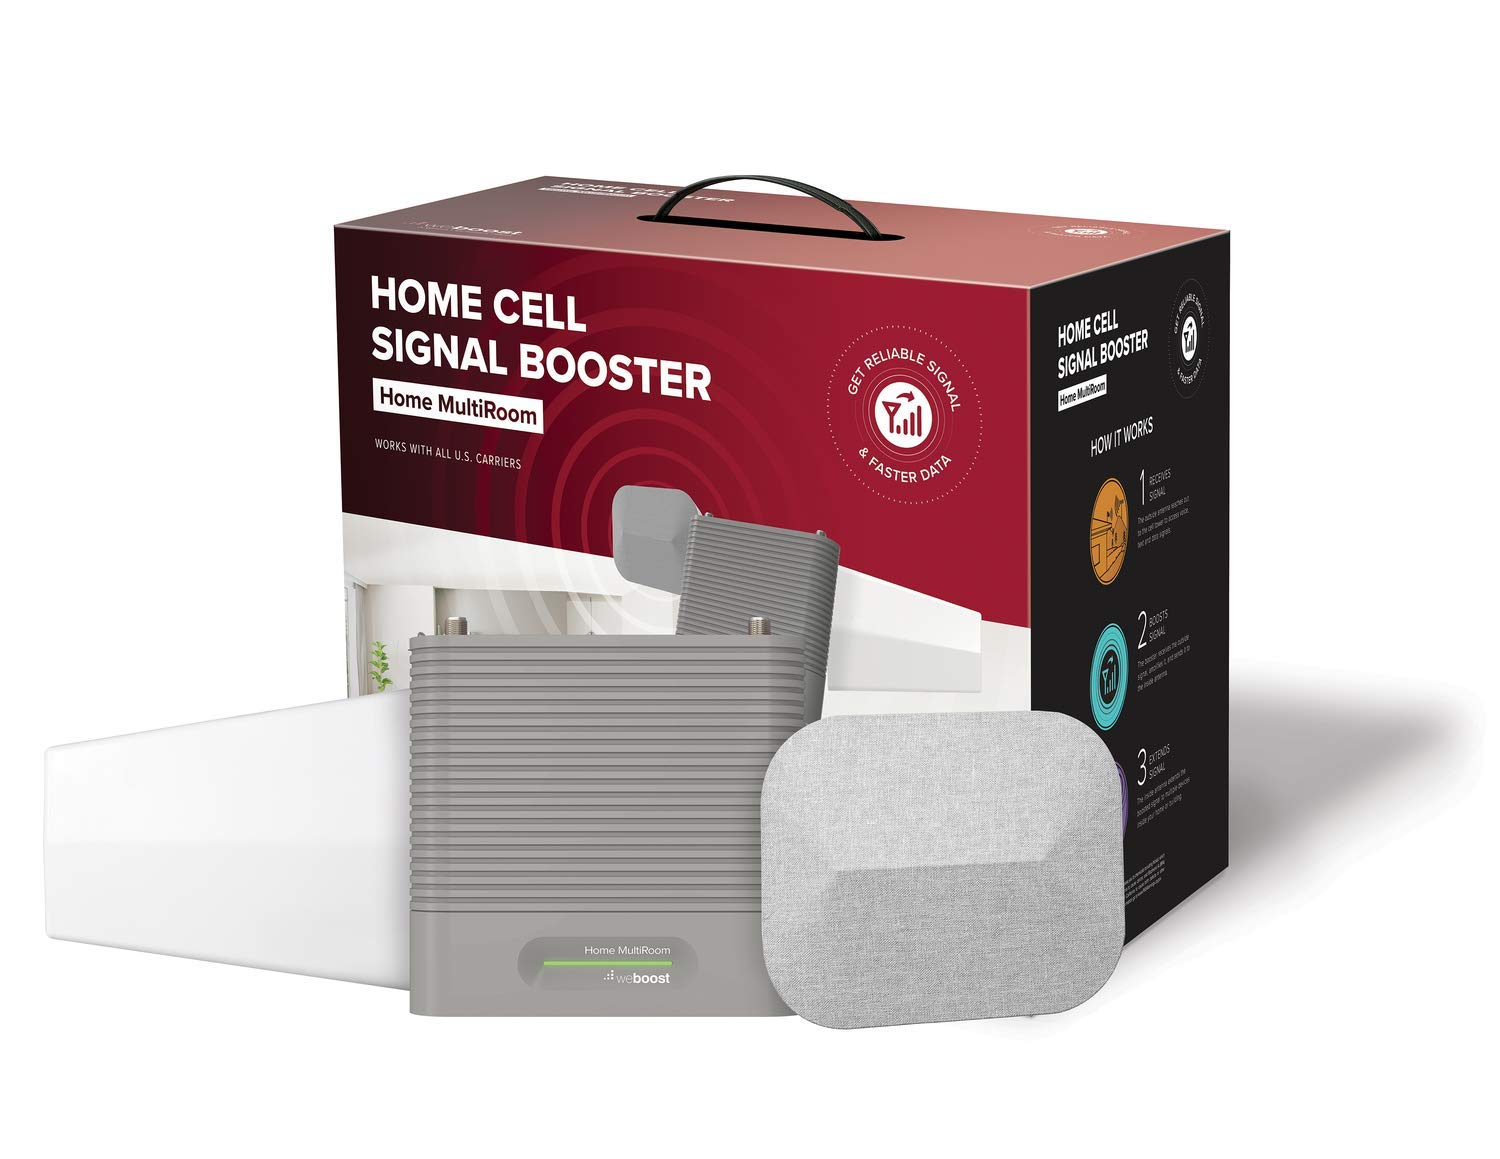 weBoost Home MultiRoom (470144) Cell Phone Signal Booster, Cell Signal Booster Kit for up to Three Large Rooms or 5,000 sq. ft. - FCC Approved by weBoost